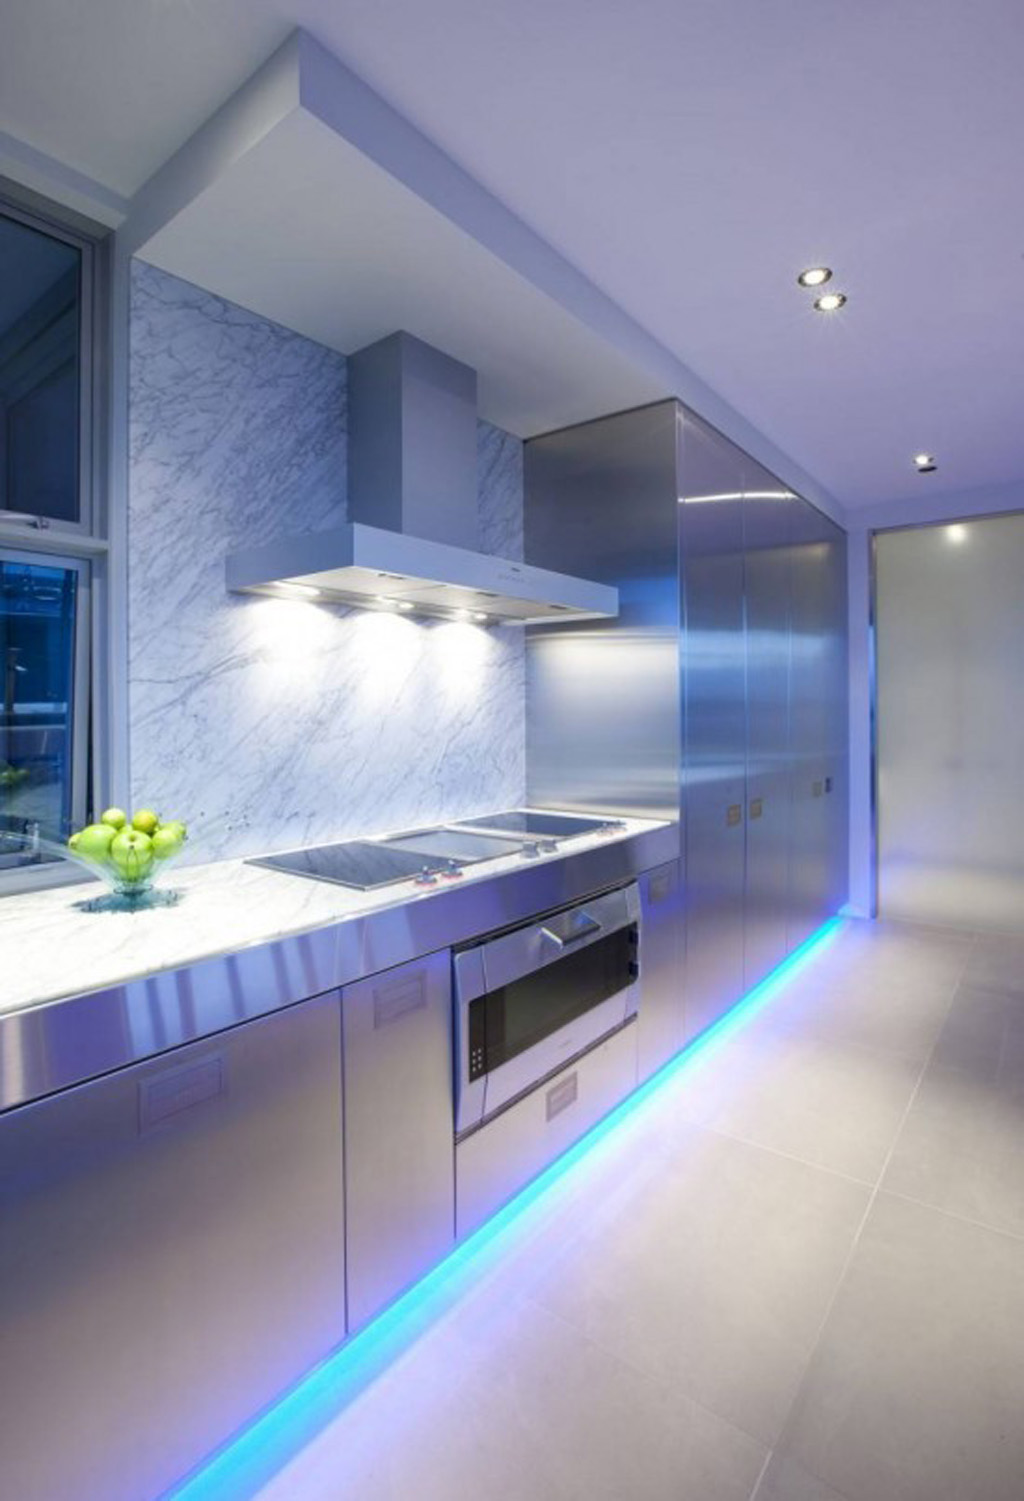 Interior Lighting Design Of Modern Kitchen Interior Decor